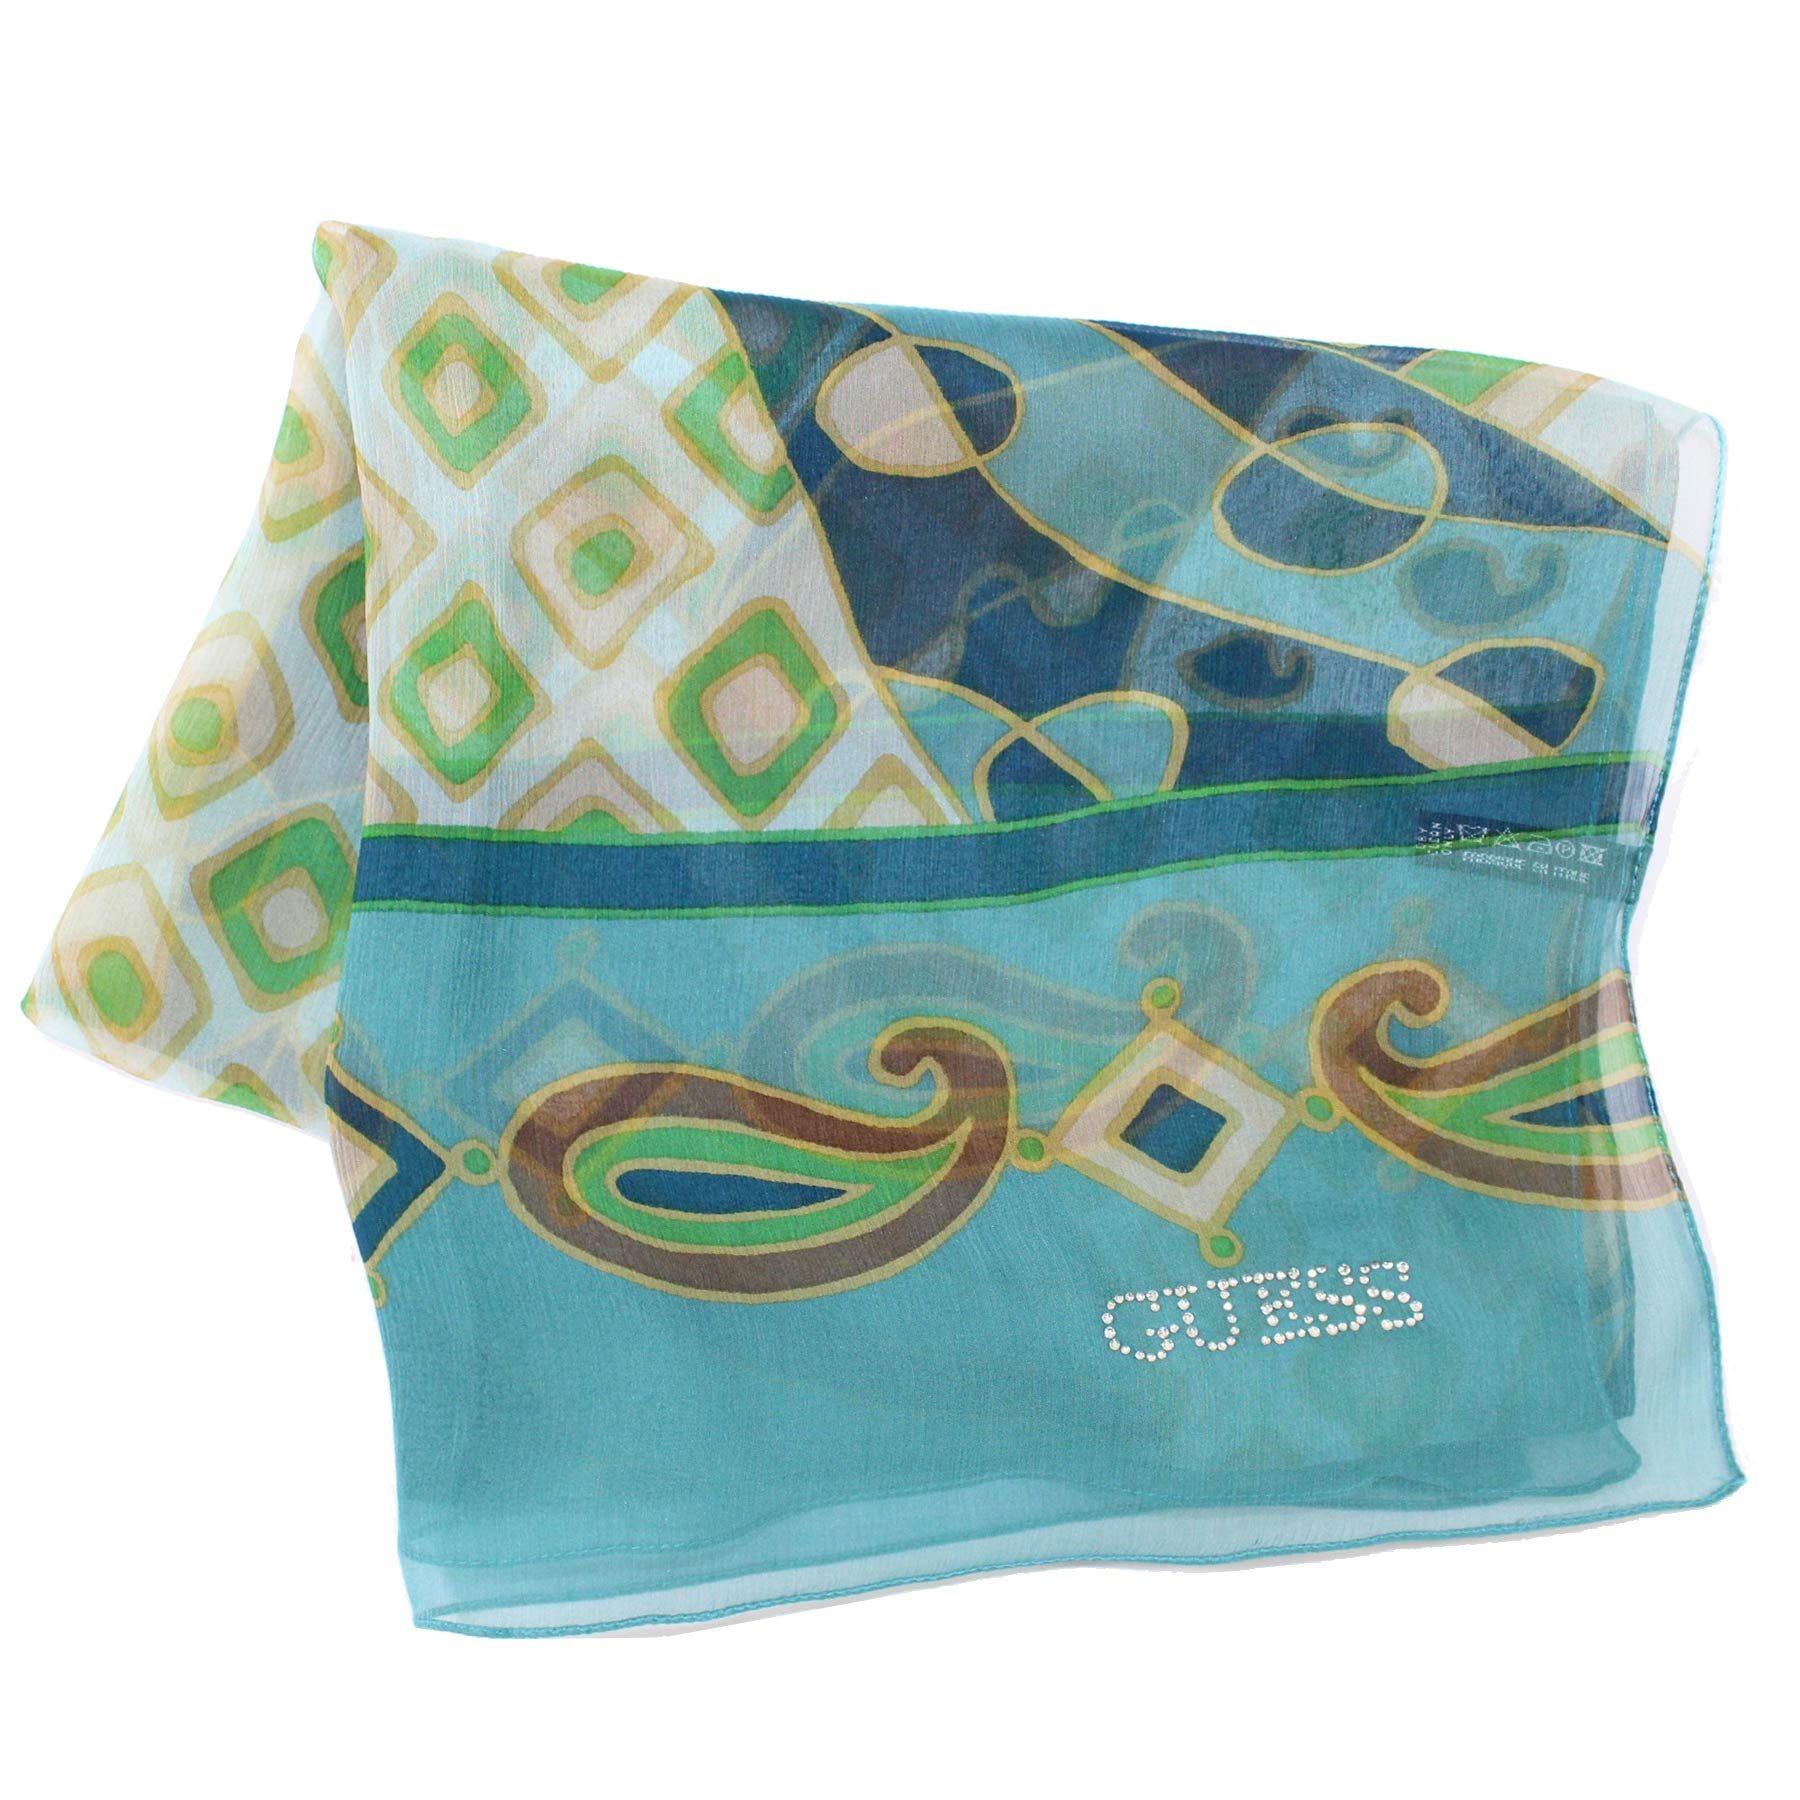 Guess Scarf Teal Green Design